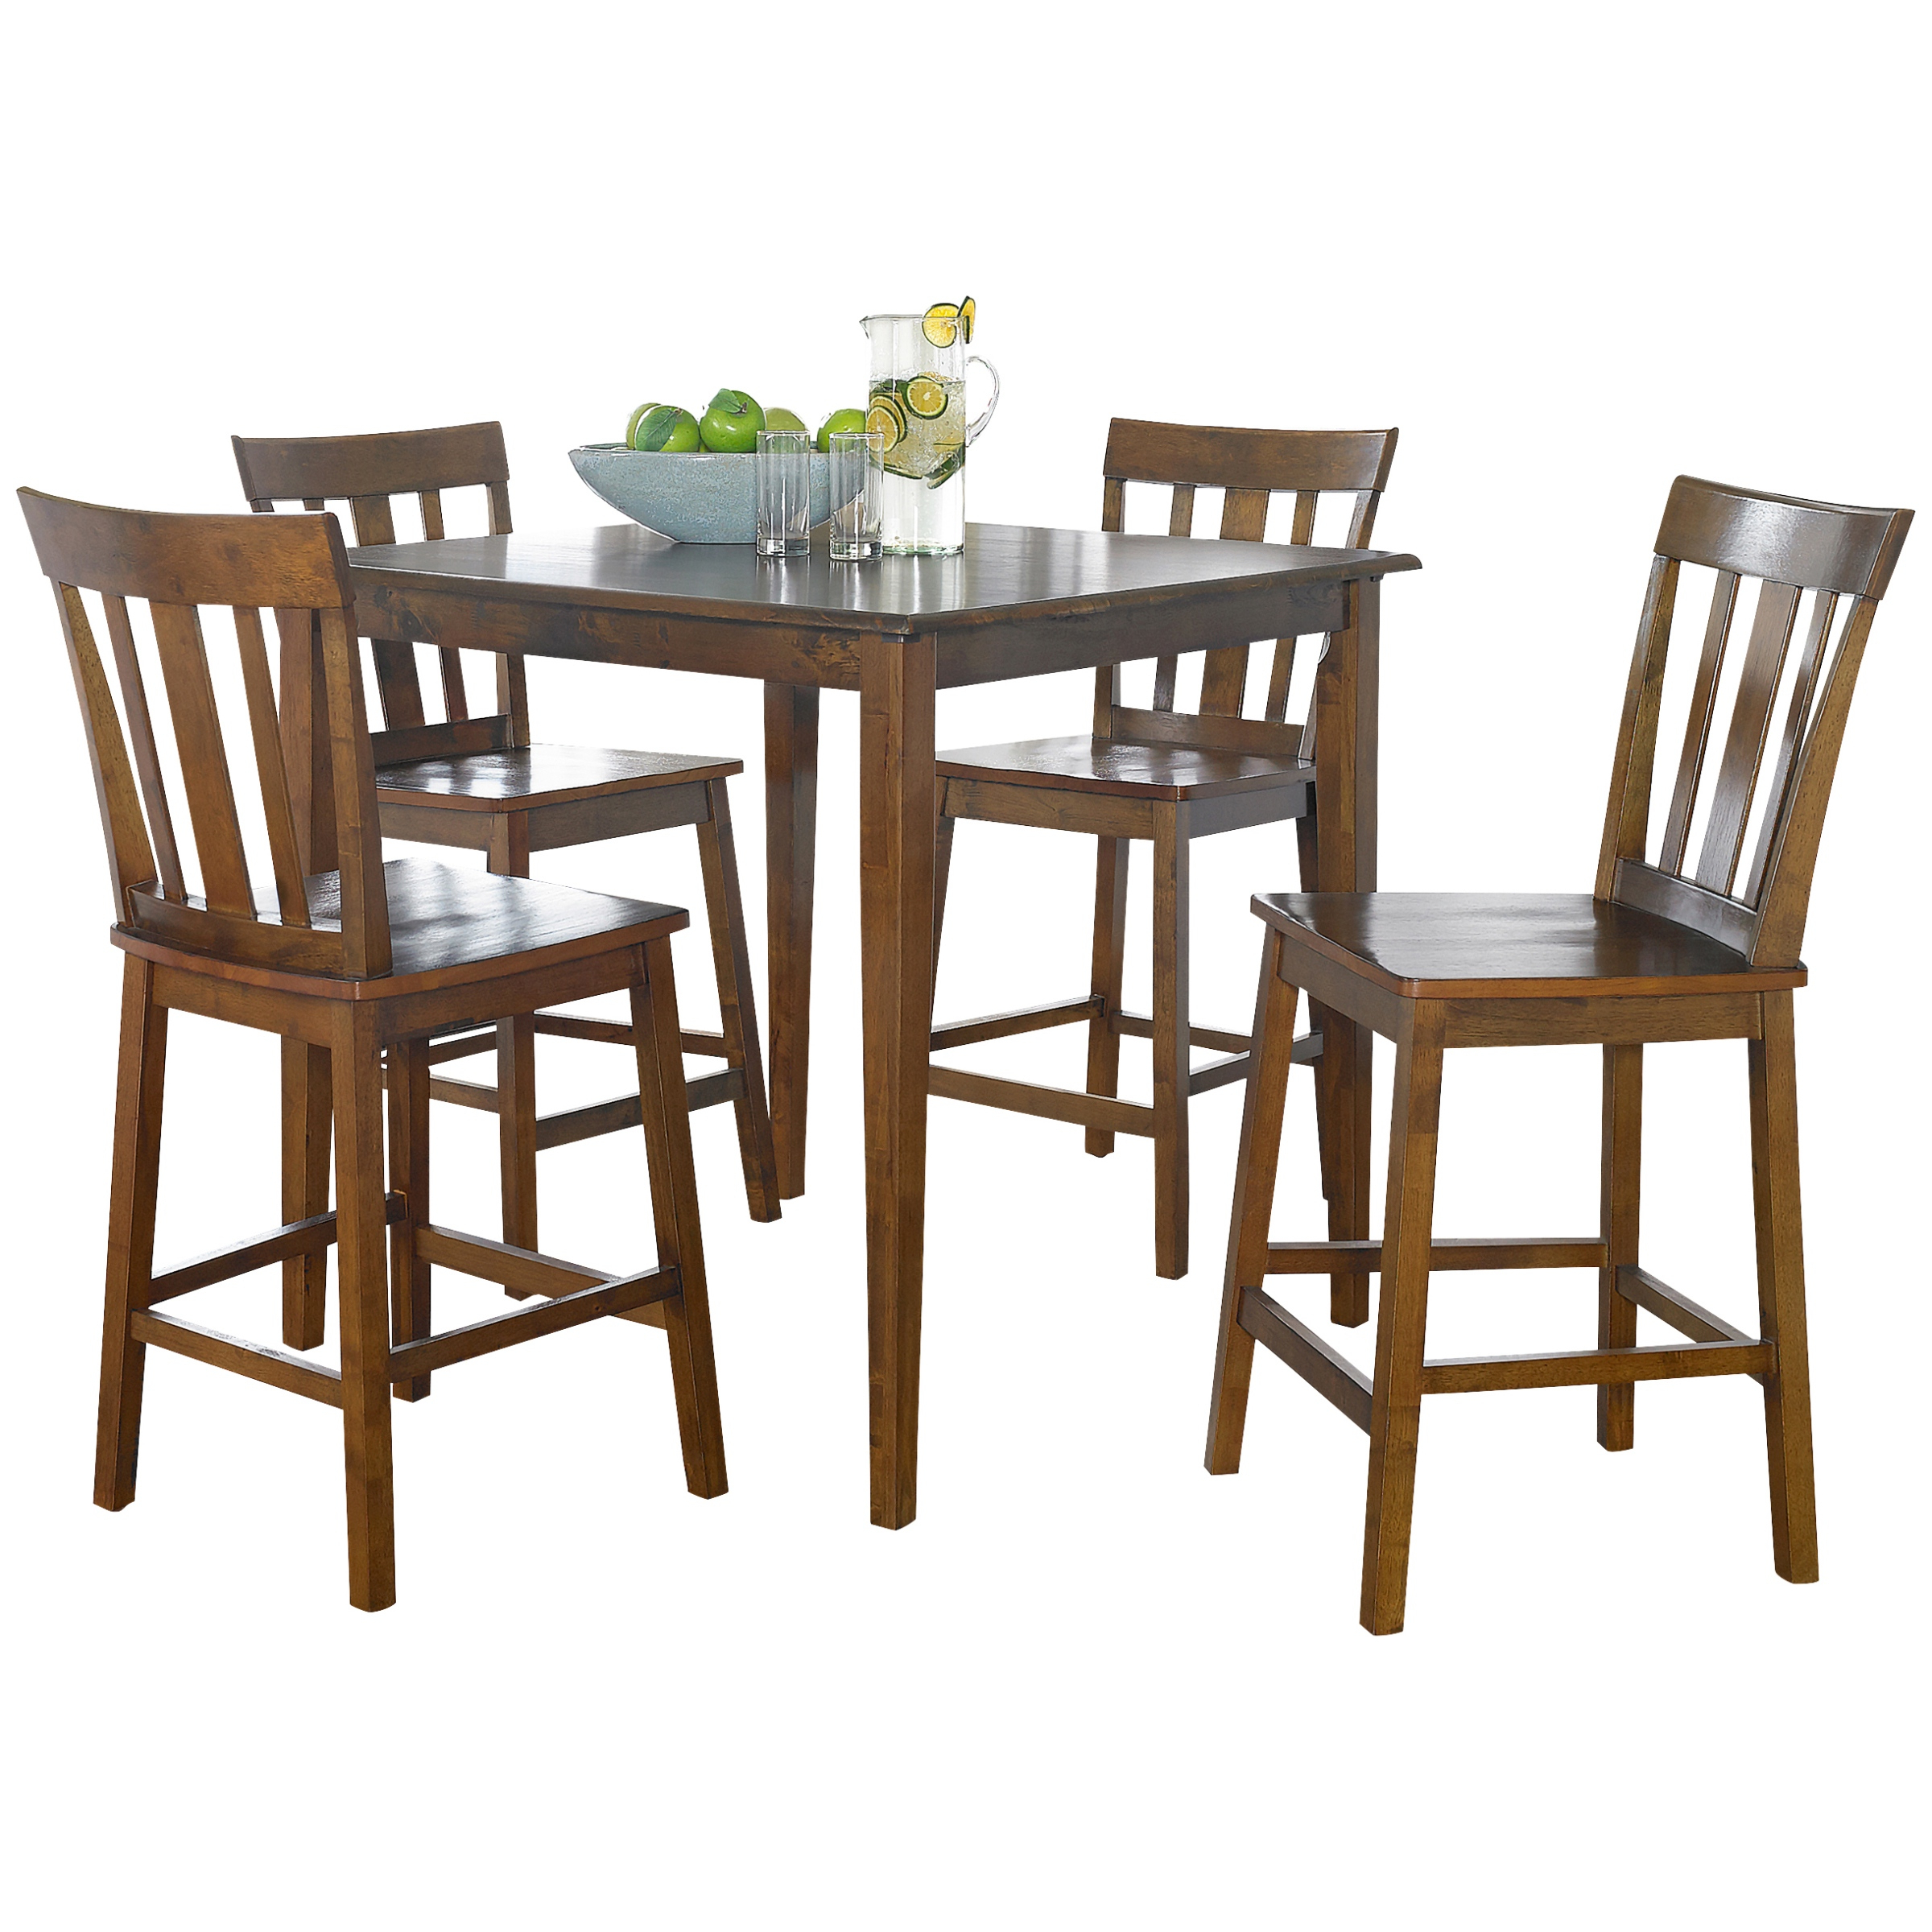 Mainstays 5 Piece Mission Counter Height Dining Set – Walmart With Regard To Recent Goodman 5 Piece Solid Wood Dining Sets (Set Of 5) (View 13 of 25)